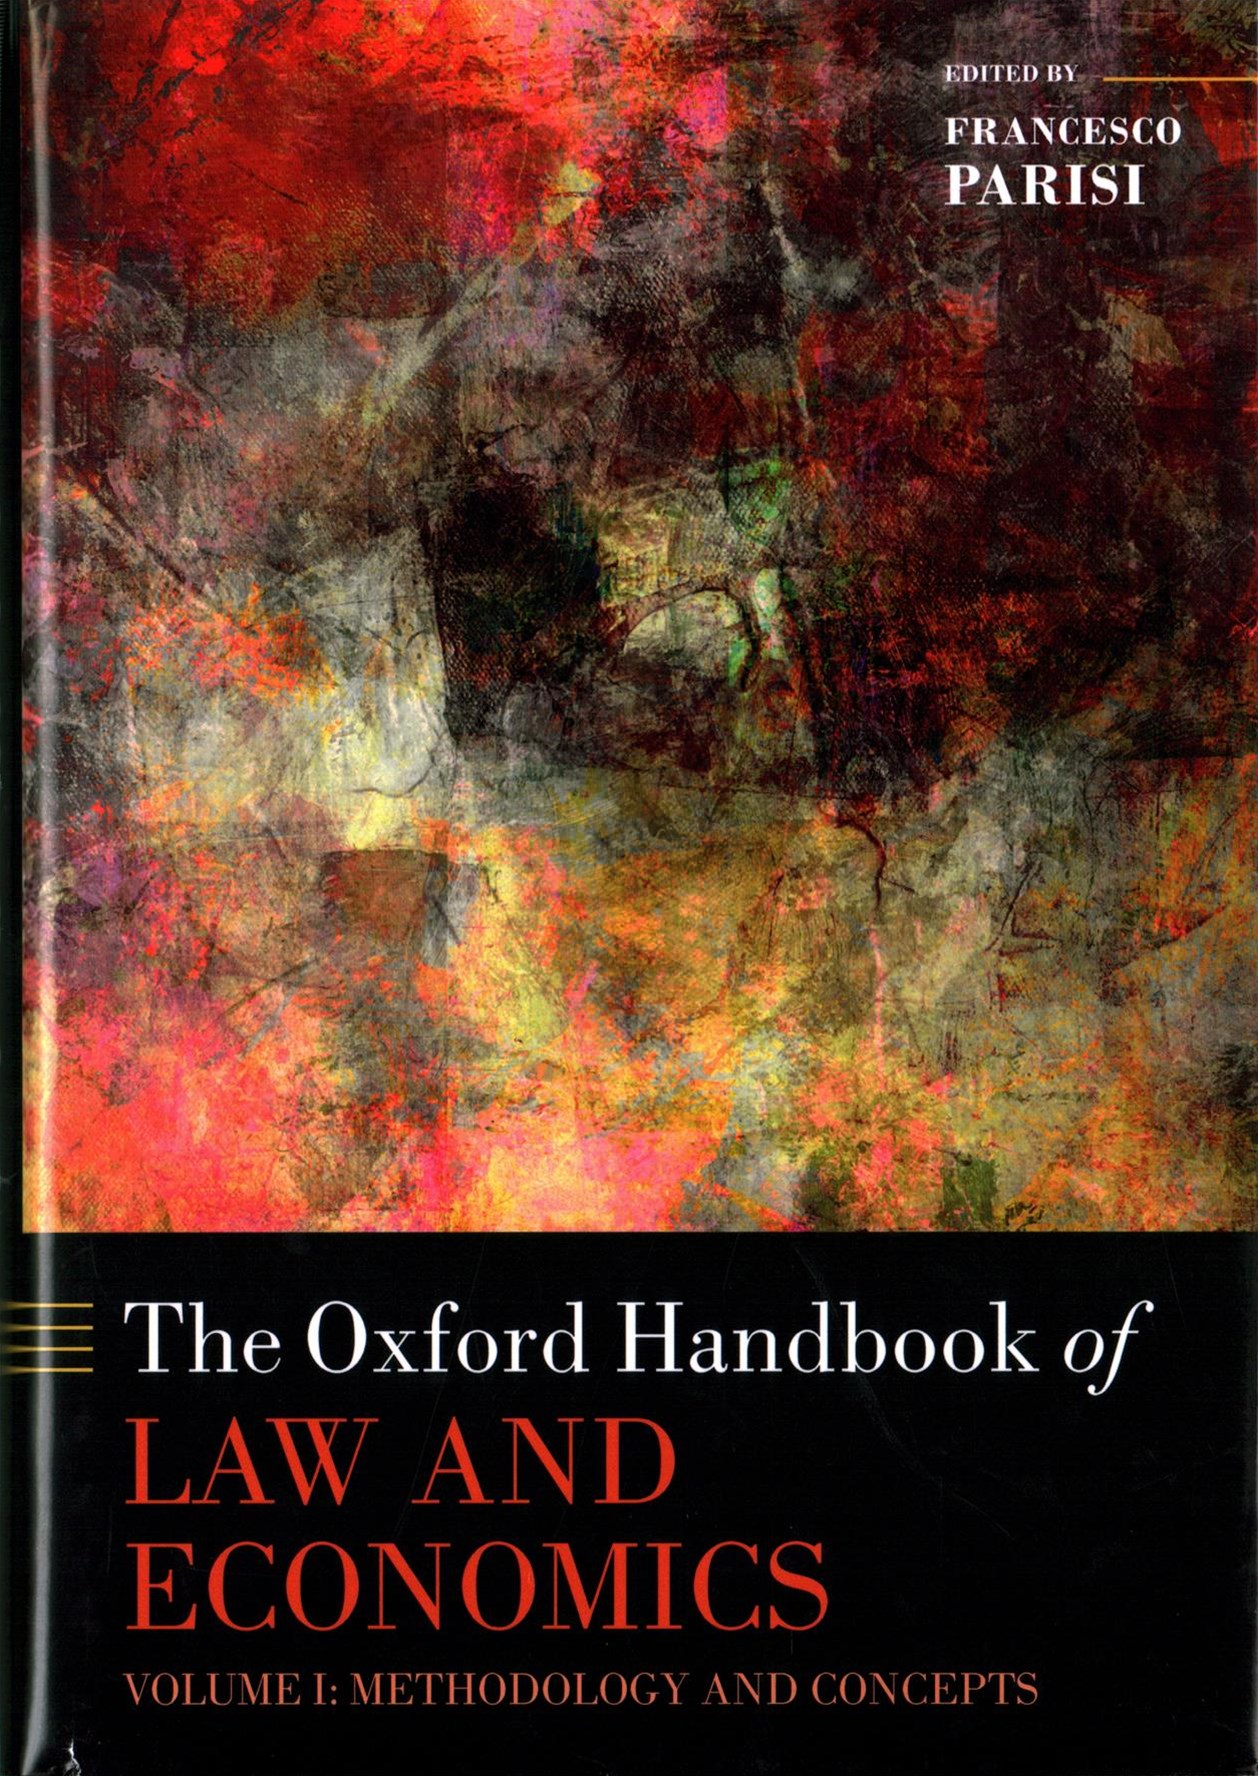 The Oxford Handbook of Law and Economics, Volume 1